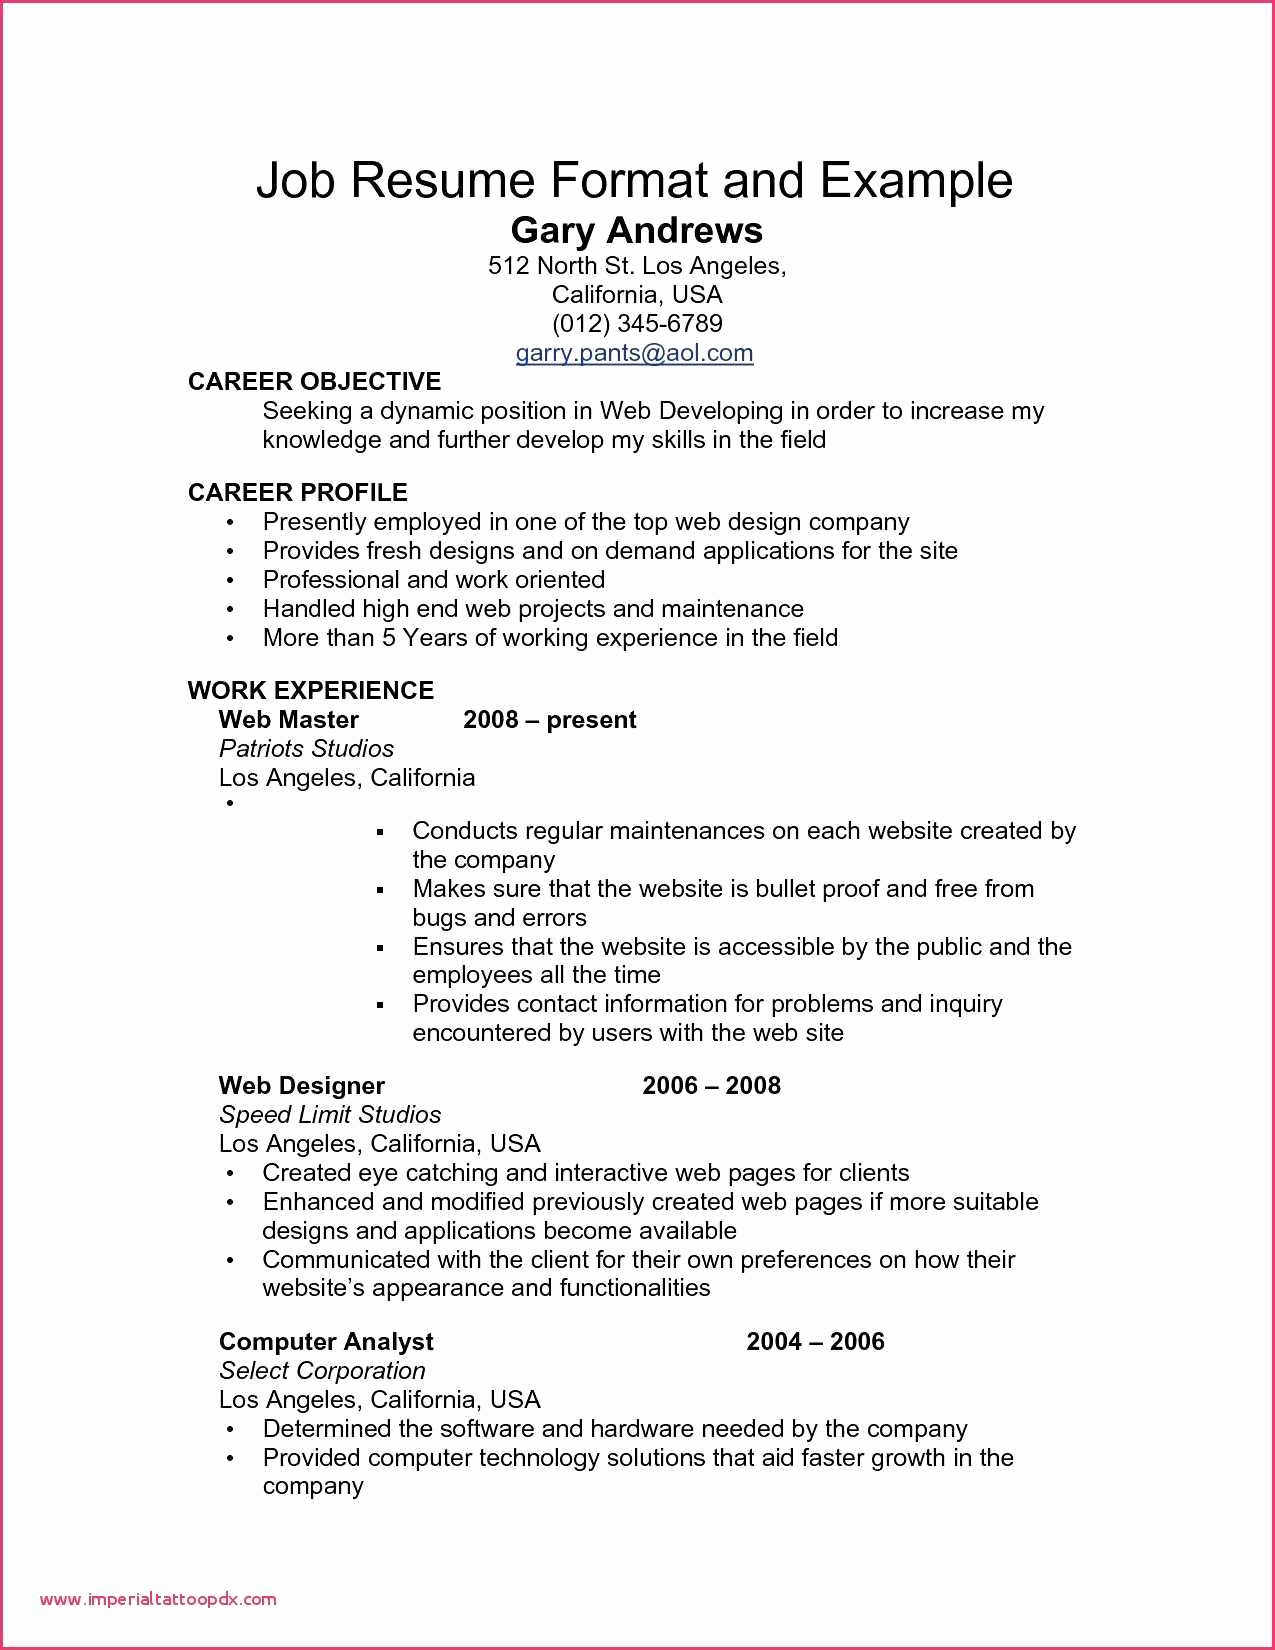 Best Profile for Resume - High Profile Resume Samples Awesome 266 Best Resume Examples